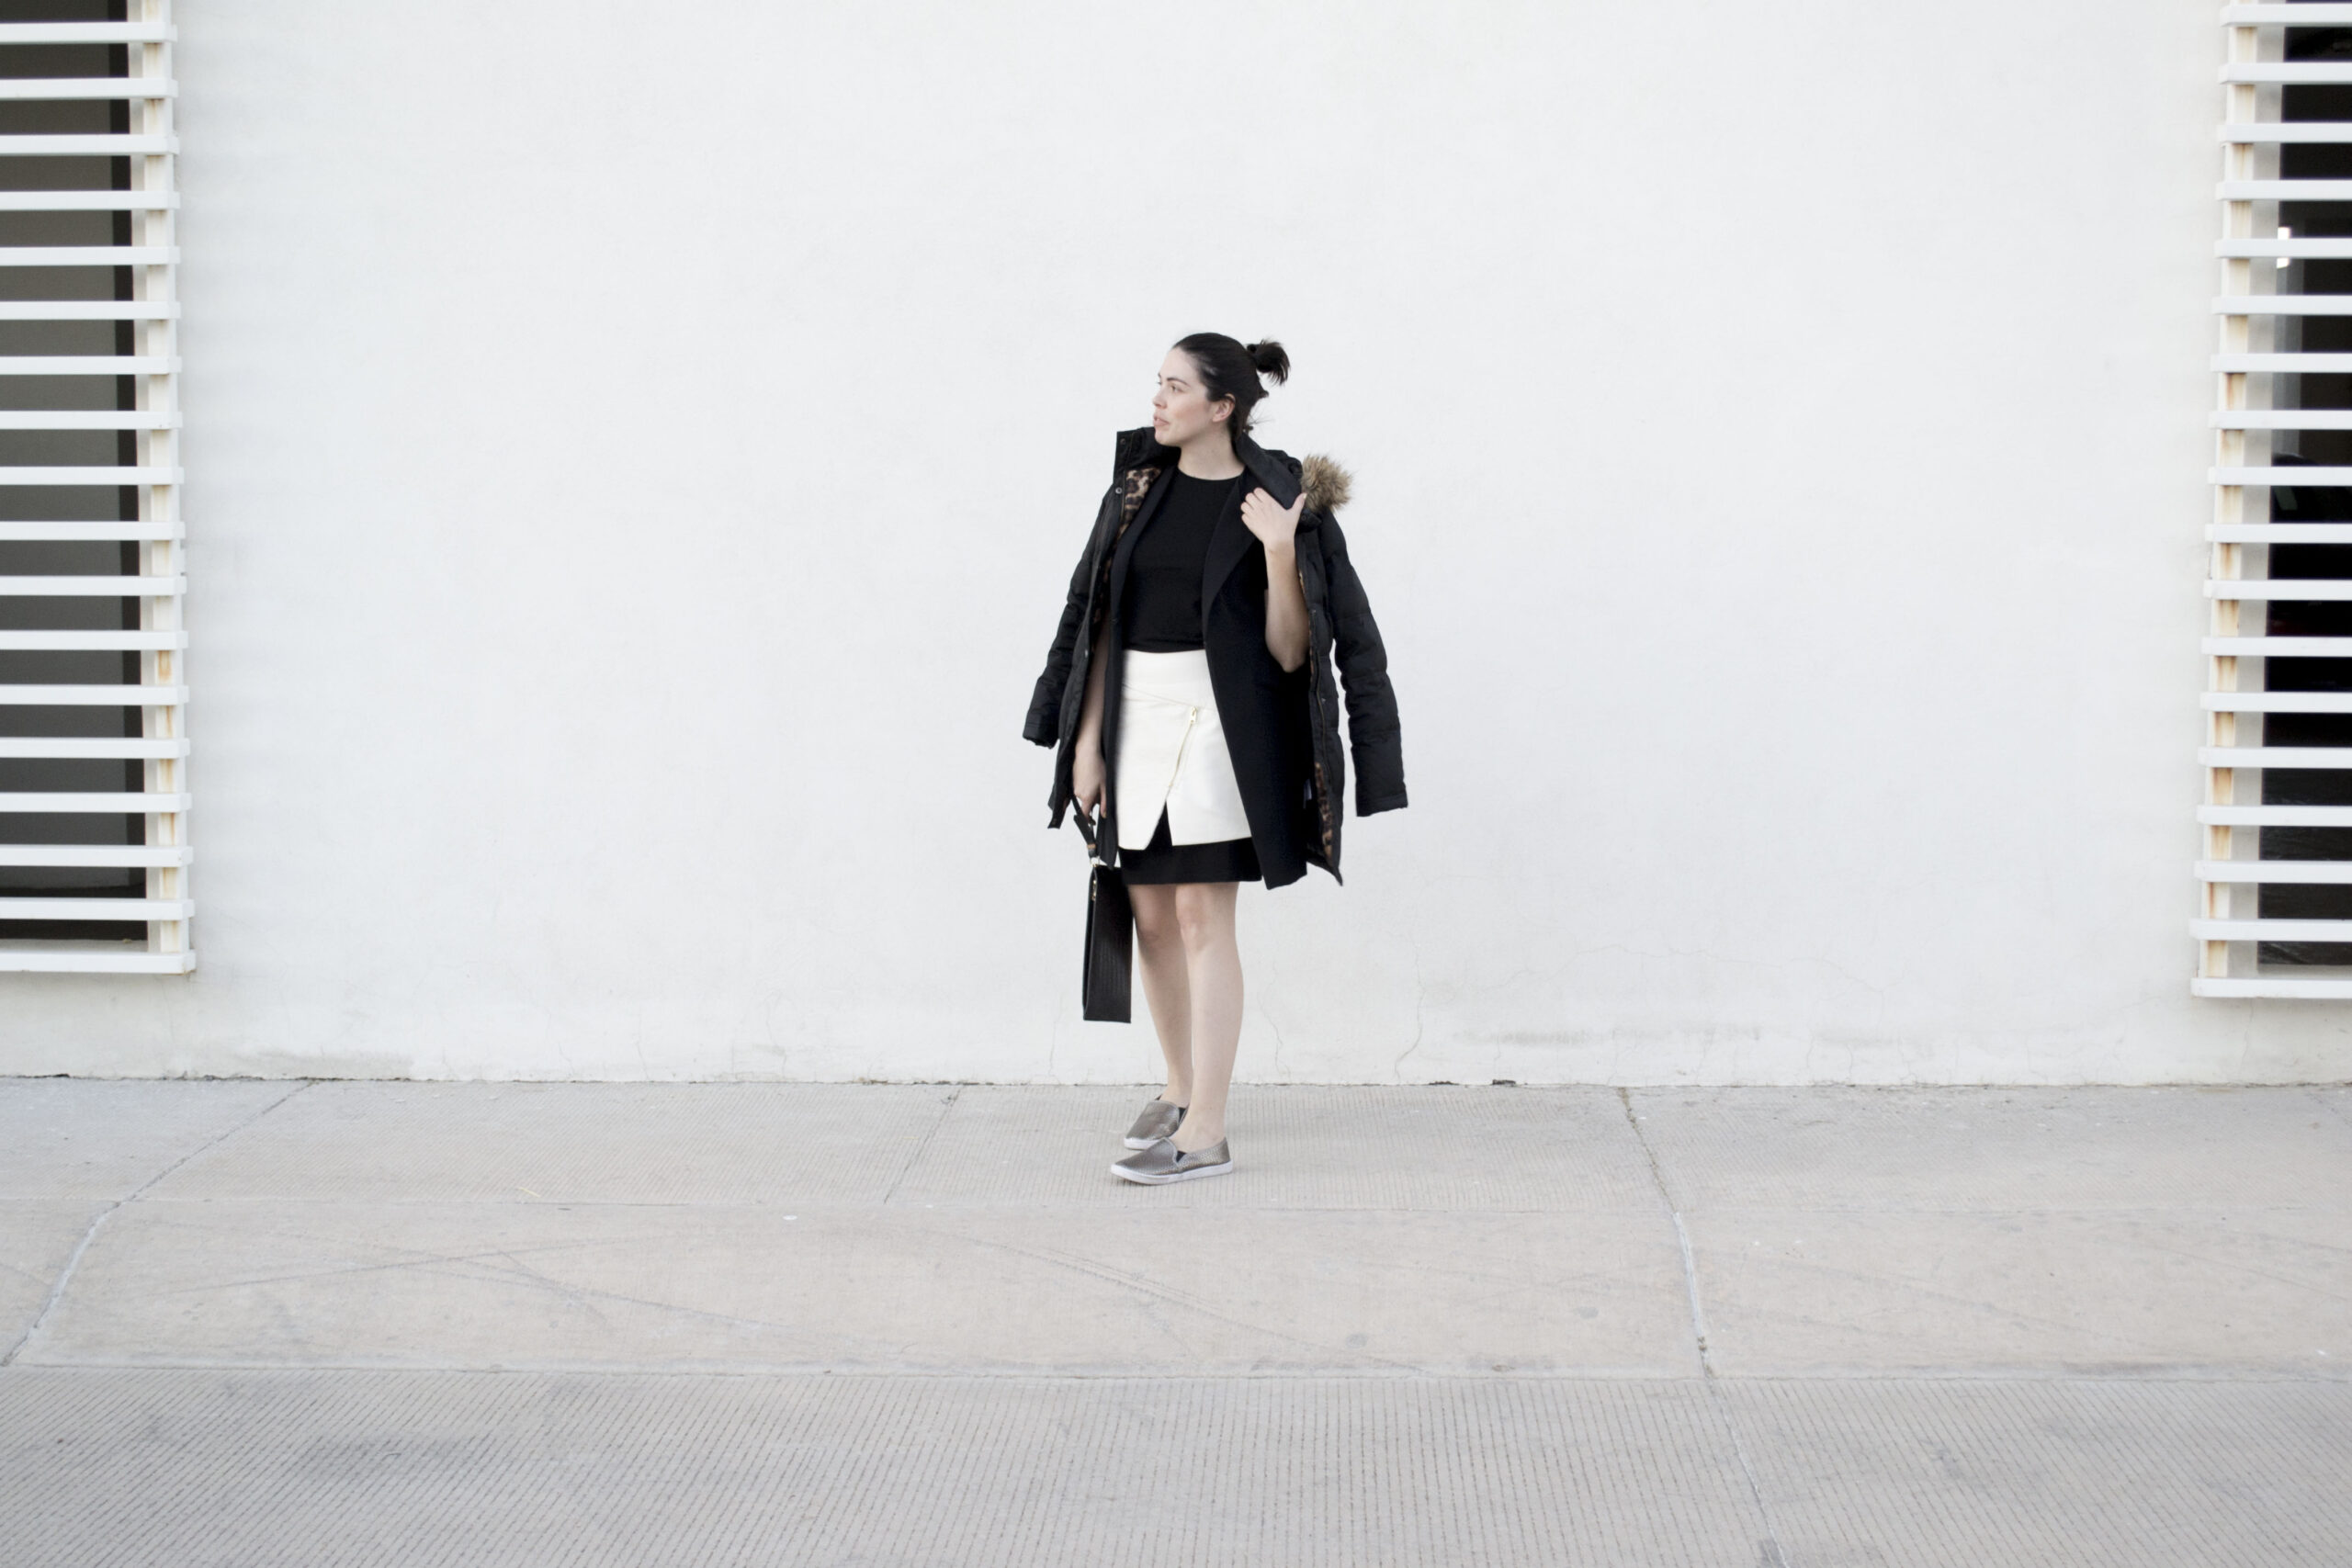 daniela soriano, puffer jacket, long, layering, black dress, leather skirt, white, vegan leather, metallic, slip on sneakers, outfit ideas